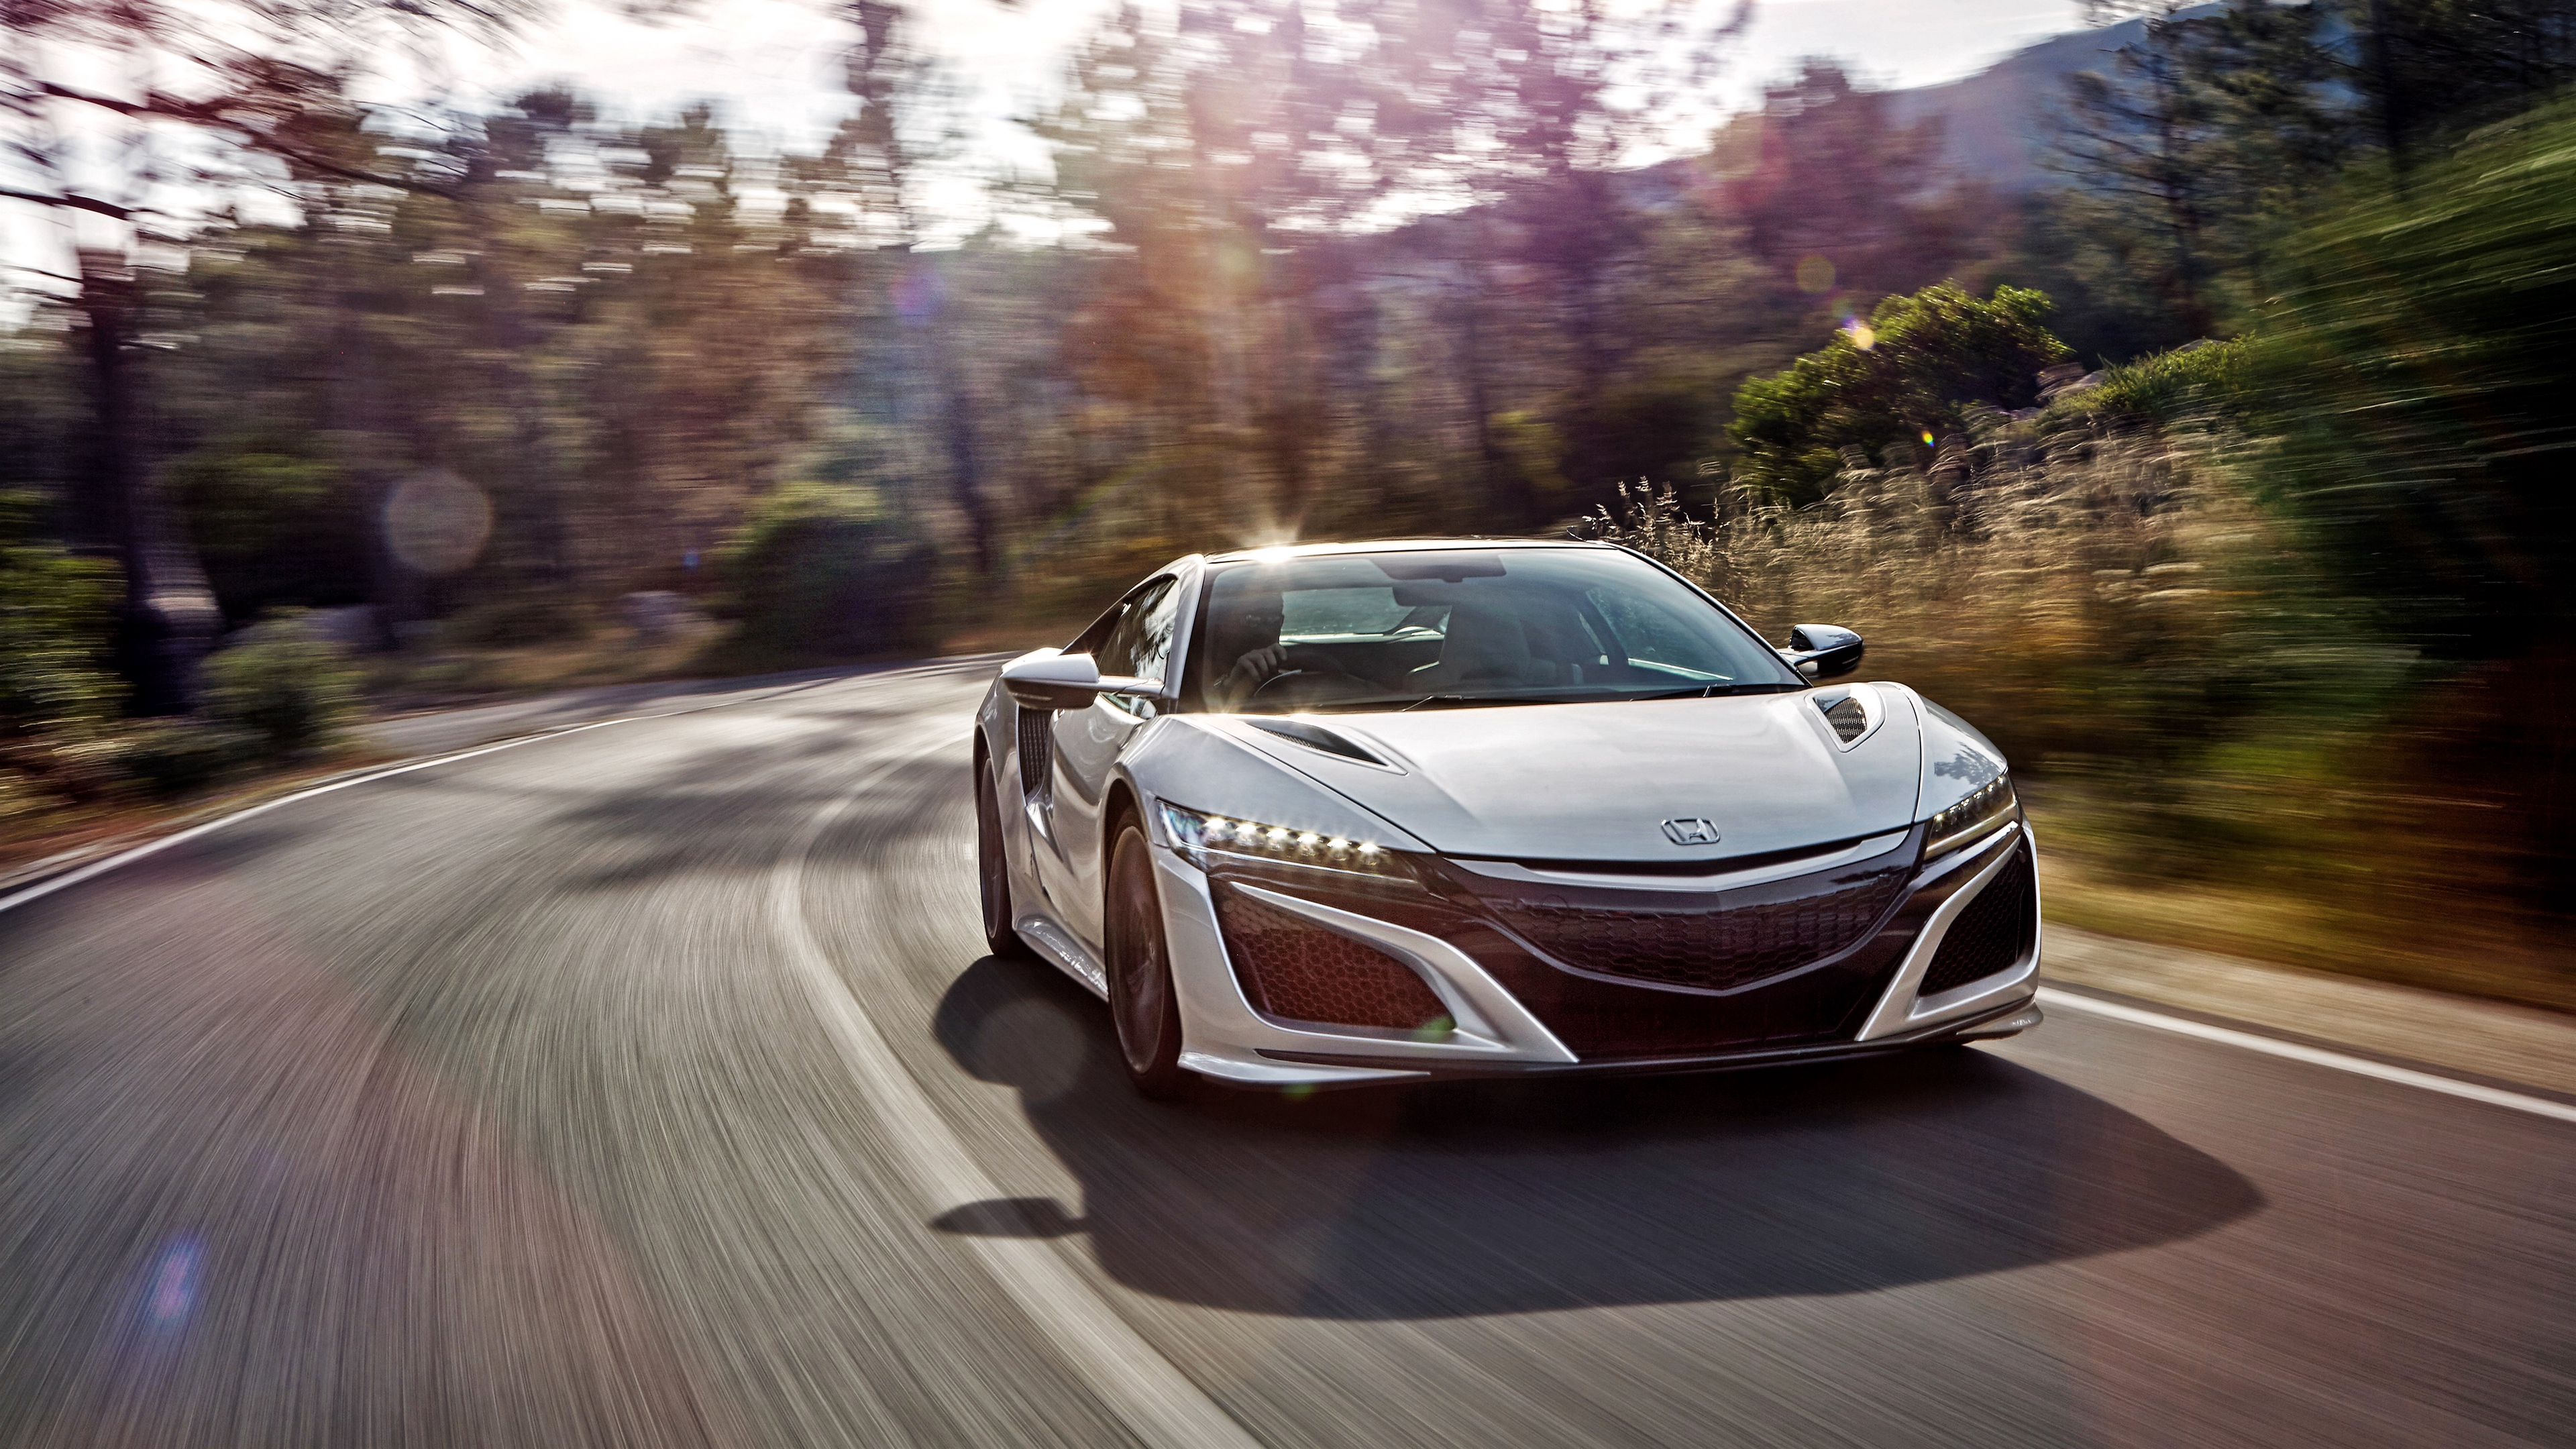 Download wallpaper 3840x2160 honda acura nsx front view speed 3840x2160